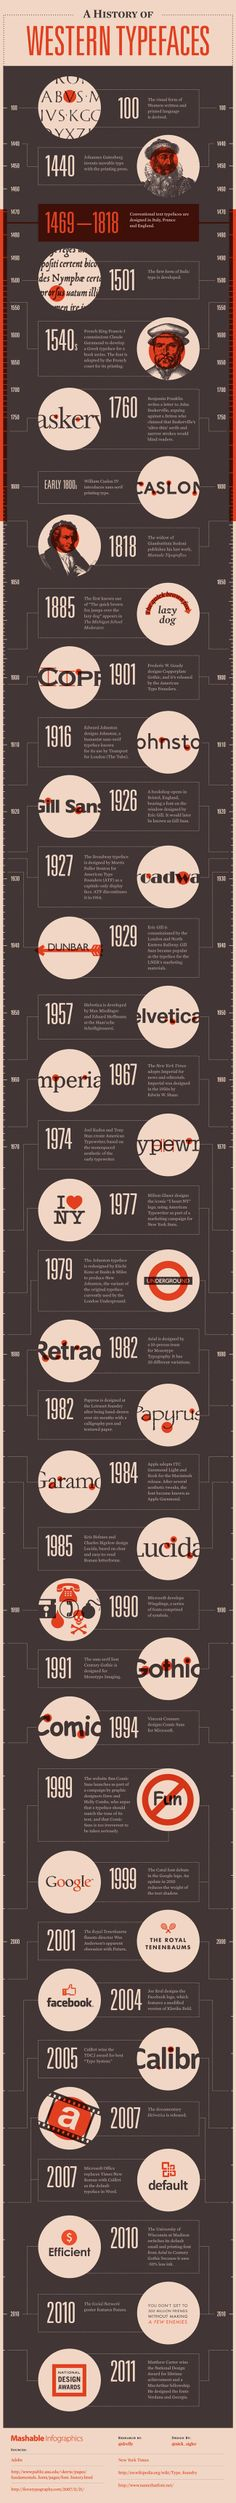 infographic-history-western-typefaces2